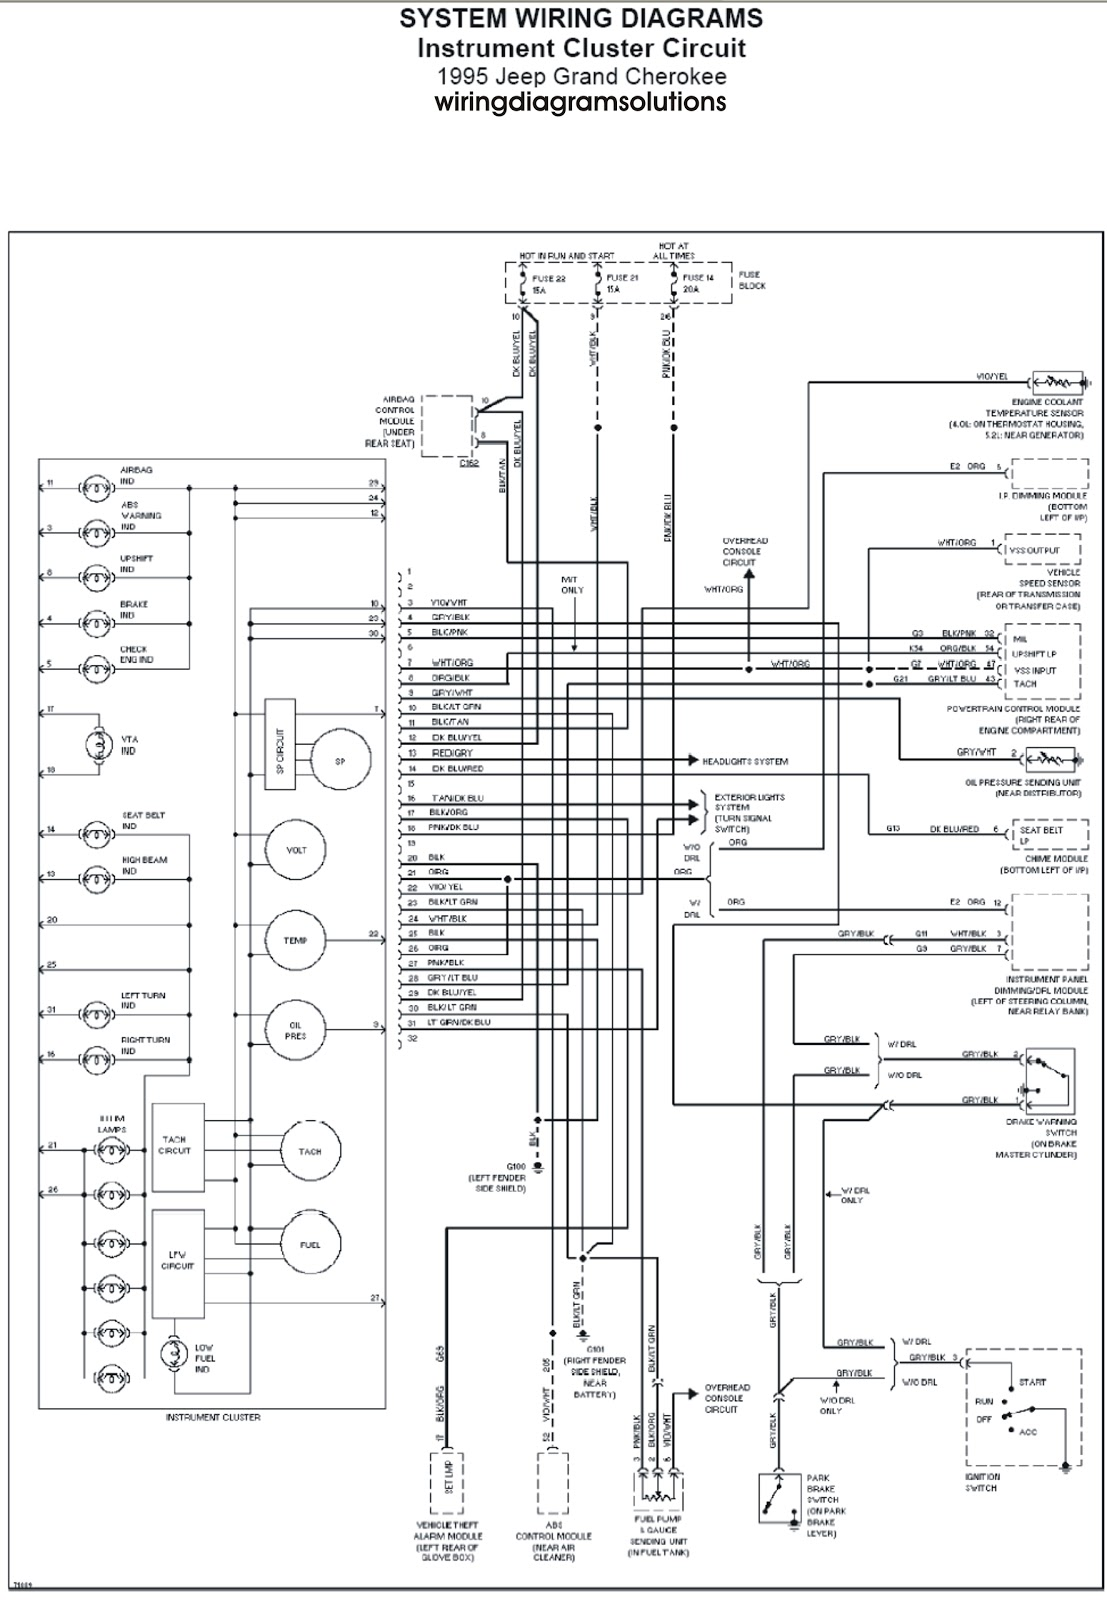 93 Jeep Grand Cherokee Wiring Diagrams from static-resources.imageservice.cloud